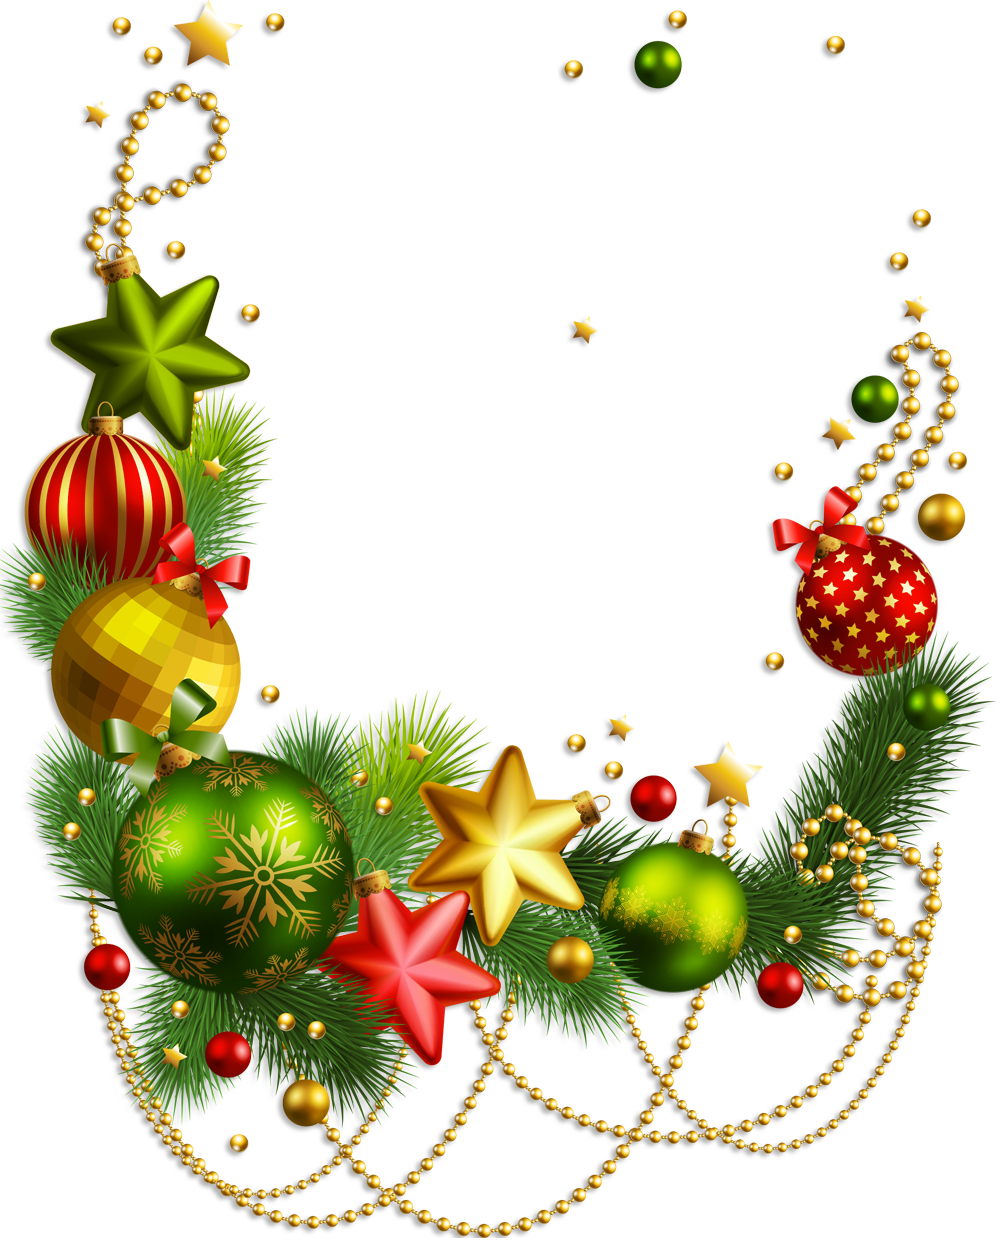 Clip Art Christmas Decorations Clipart christmas decorations clipart kid cliparts for your documents web sites art projects or presentations